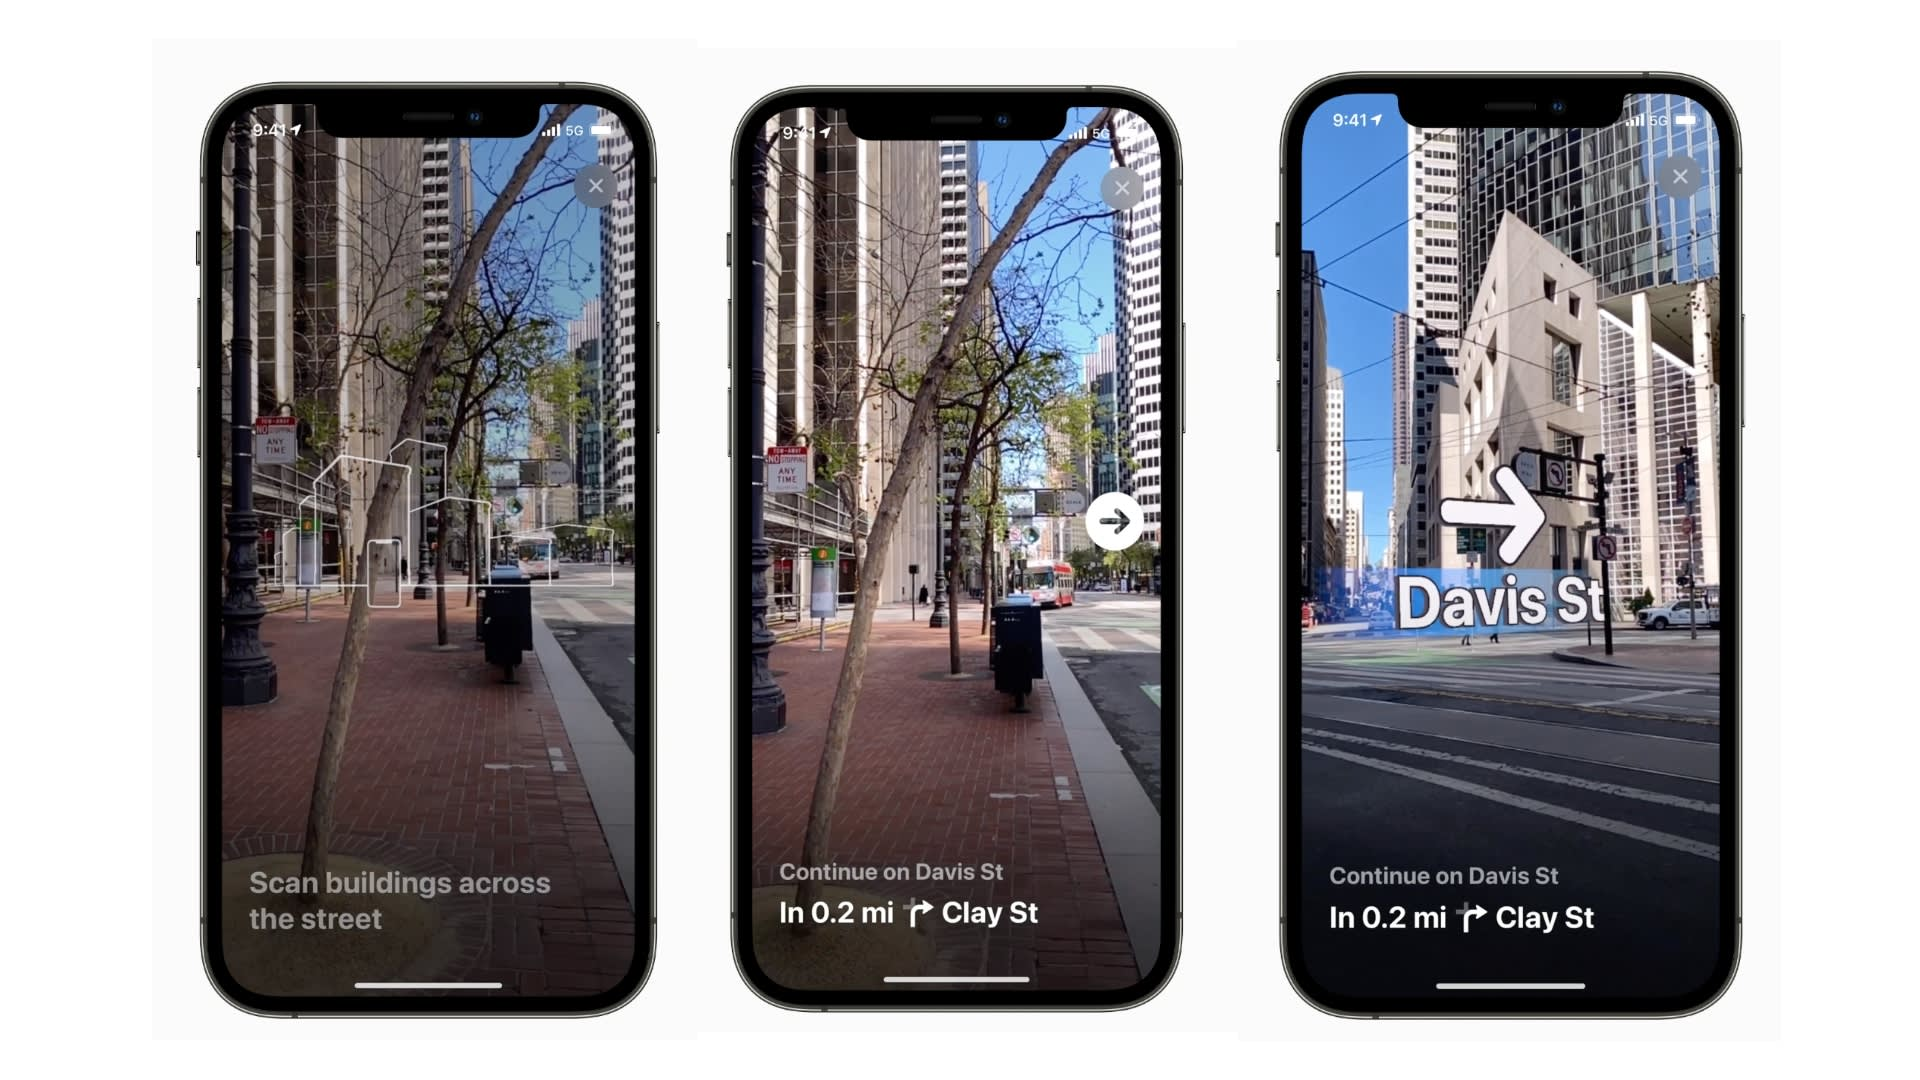 Apple augmented reality announcements at WWDC 2021